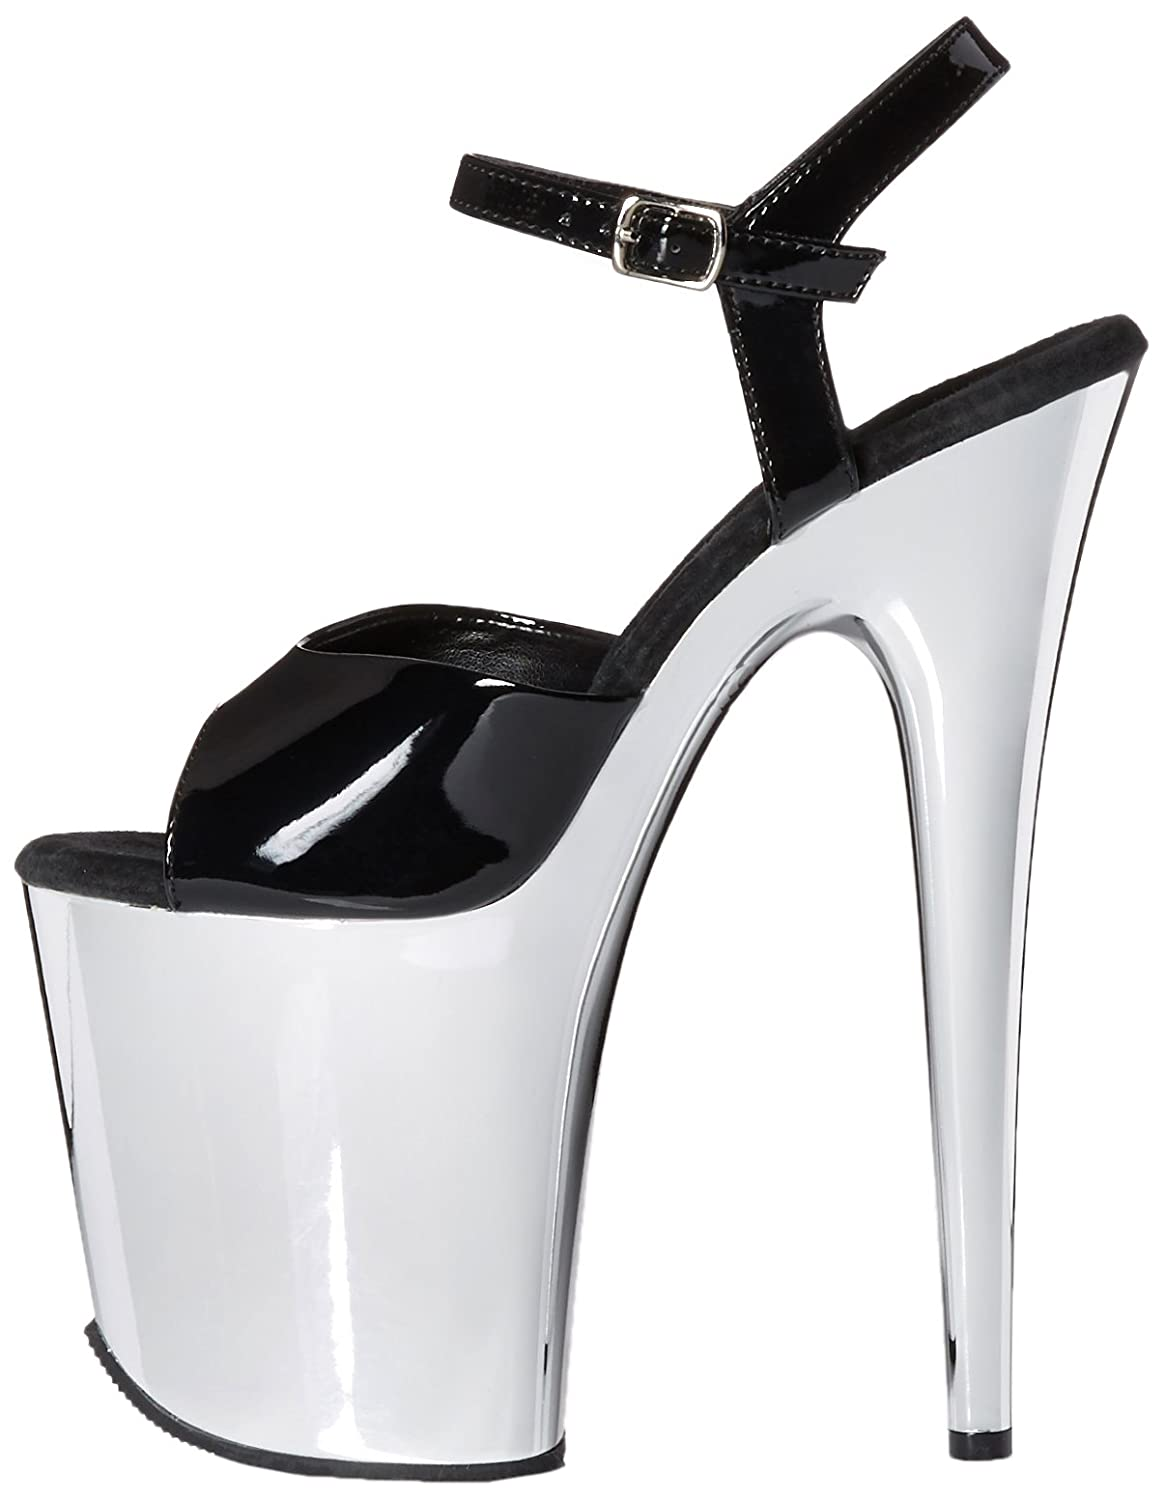 Pleaser Women's FLAM809/B/SCH 5 Platform Dress Sandal B014IZBXBW 5 FLAM809/B/SCH B(M) US|Black Patent/Silver Chrome 6a28c5